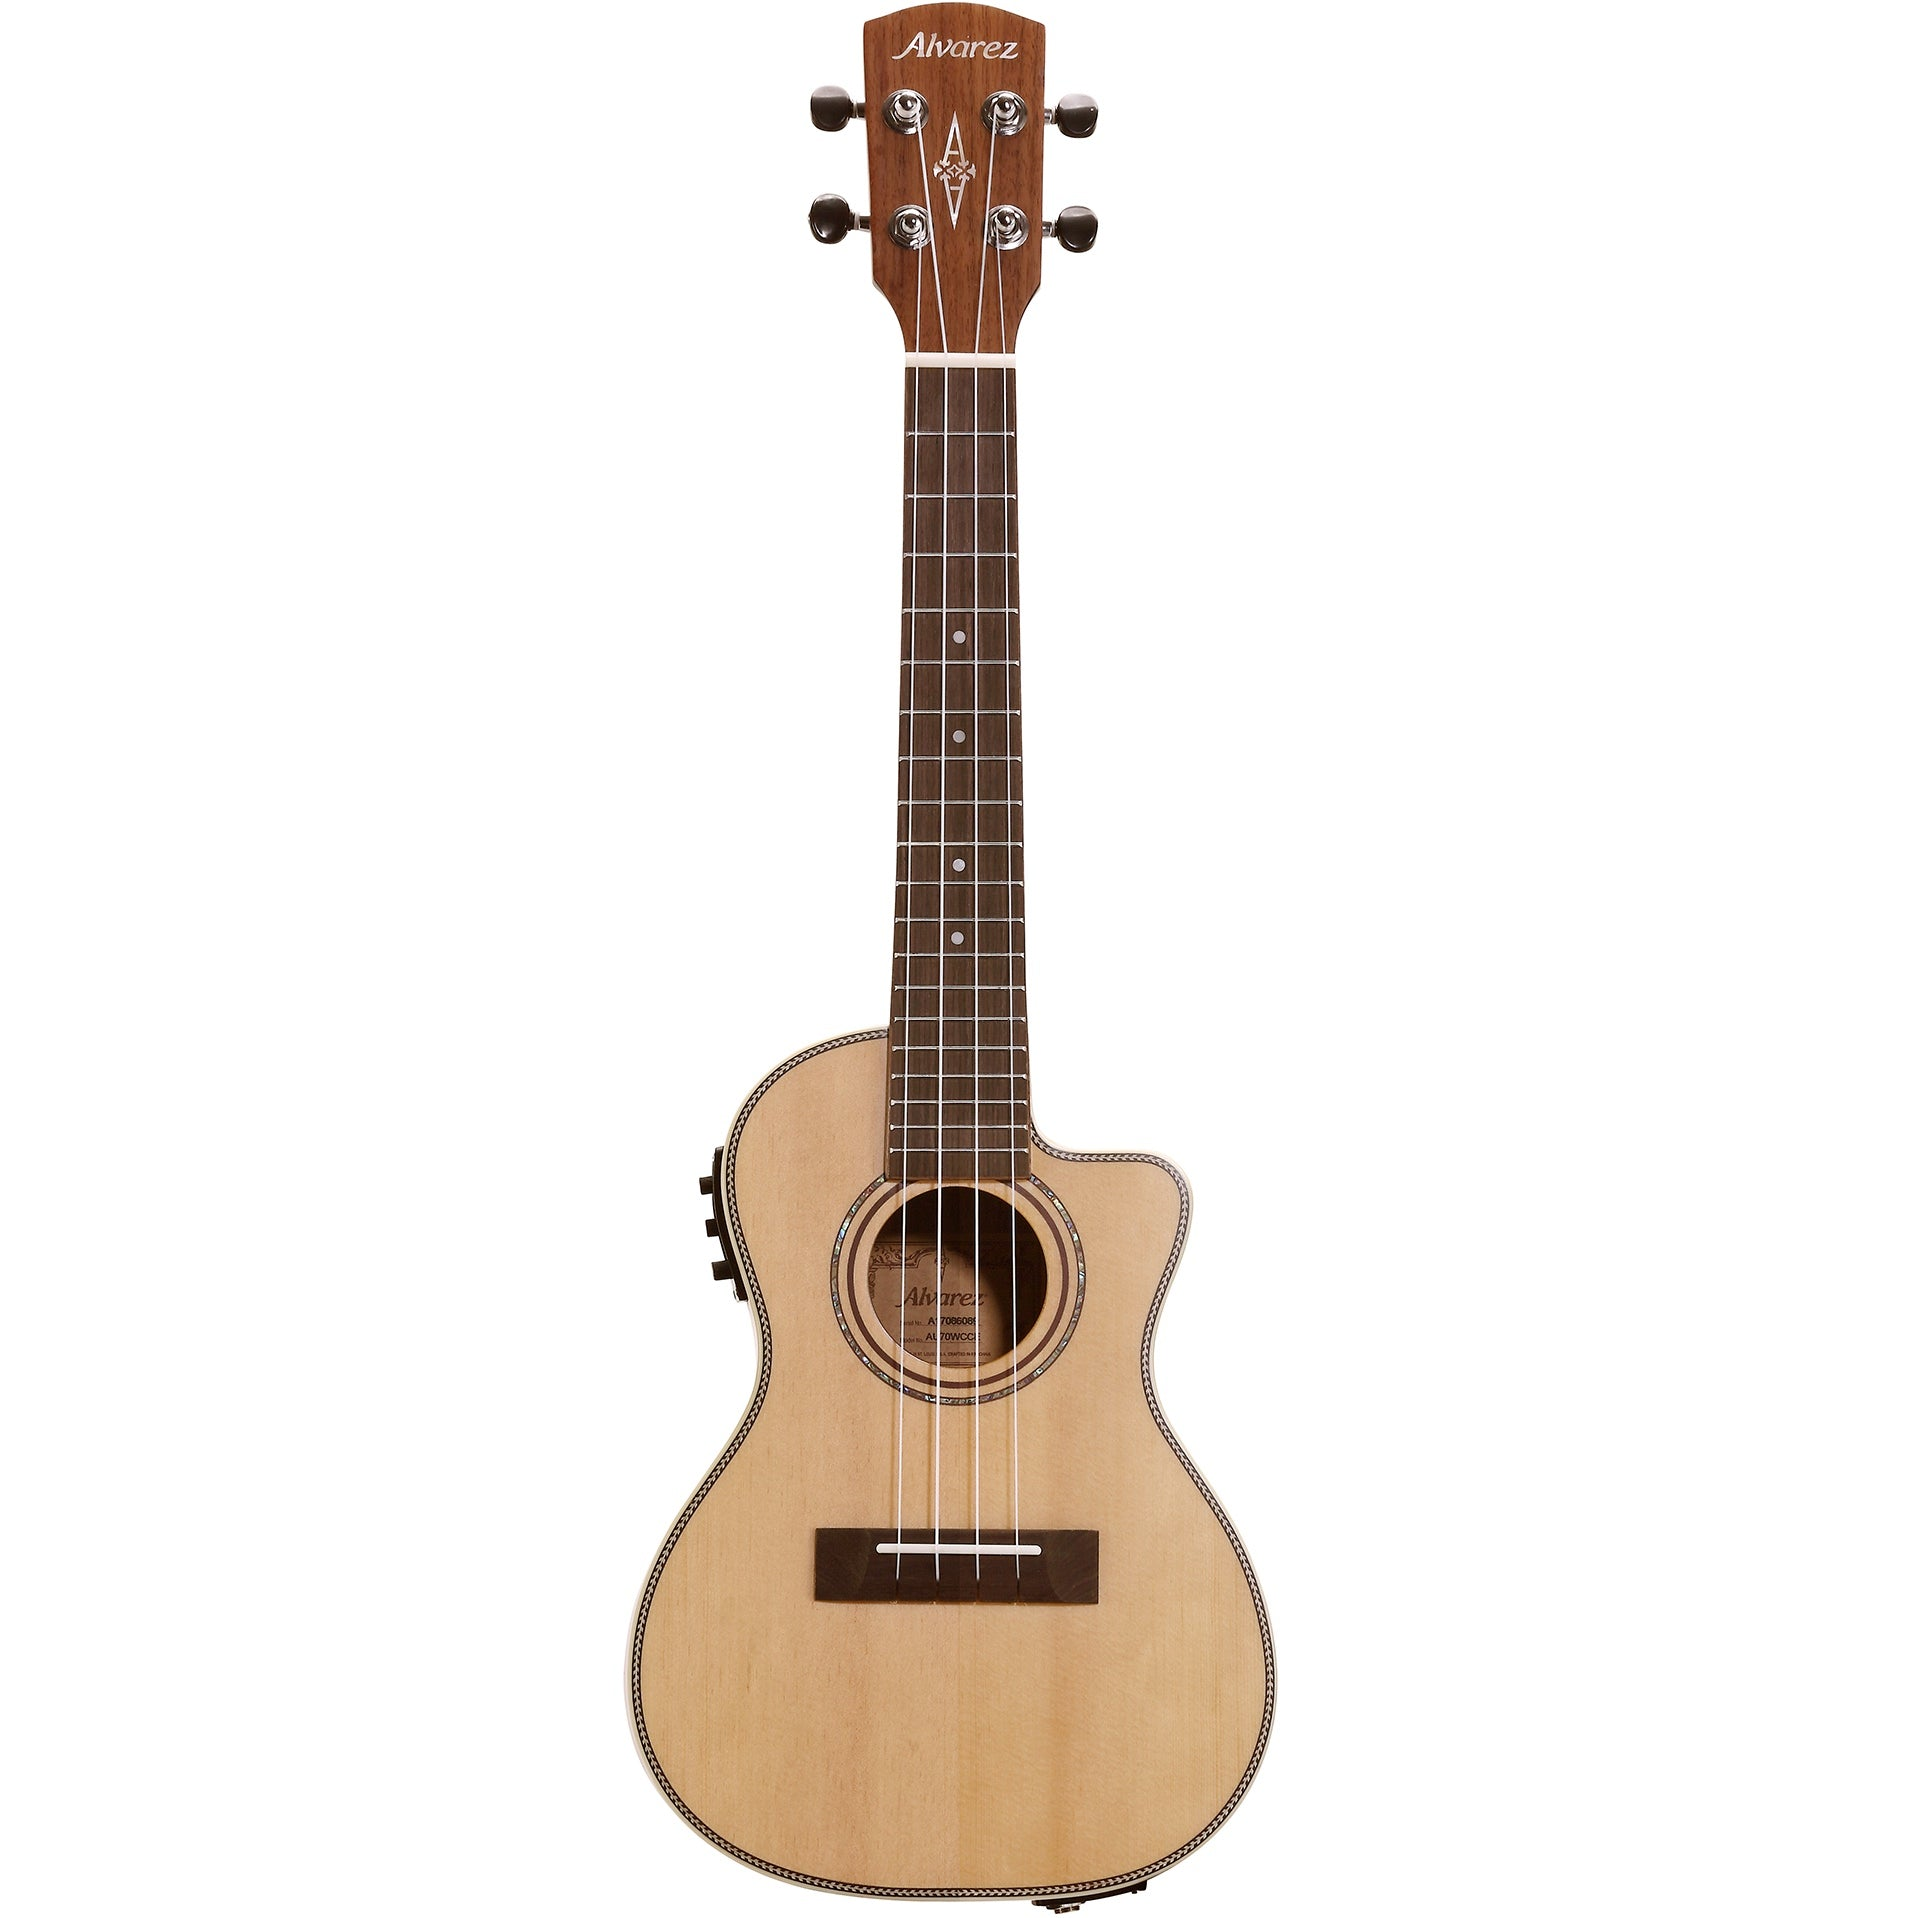 Alvarez AU70WCCE Artist Series Concert Electric Ukulele | Music Experience | Shop Online | South Africa